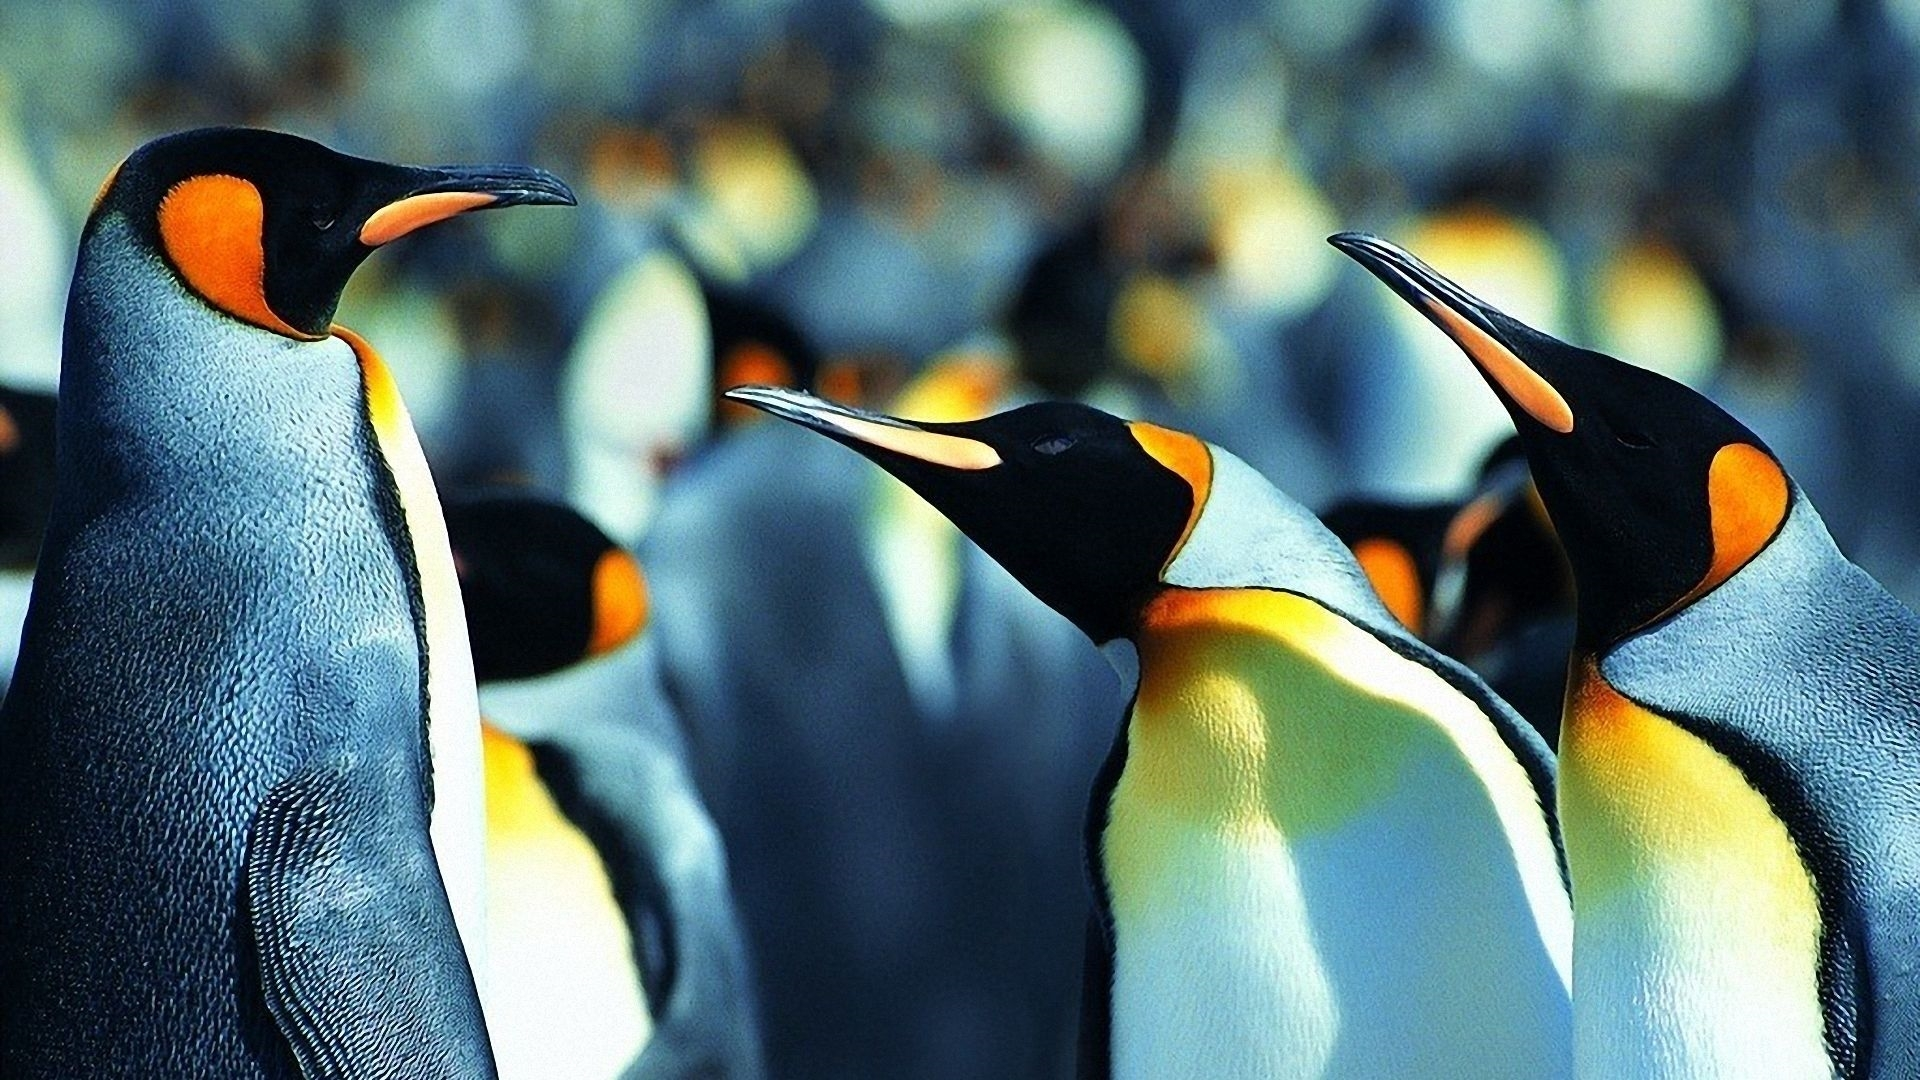 penguin download wallpaper